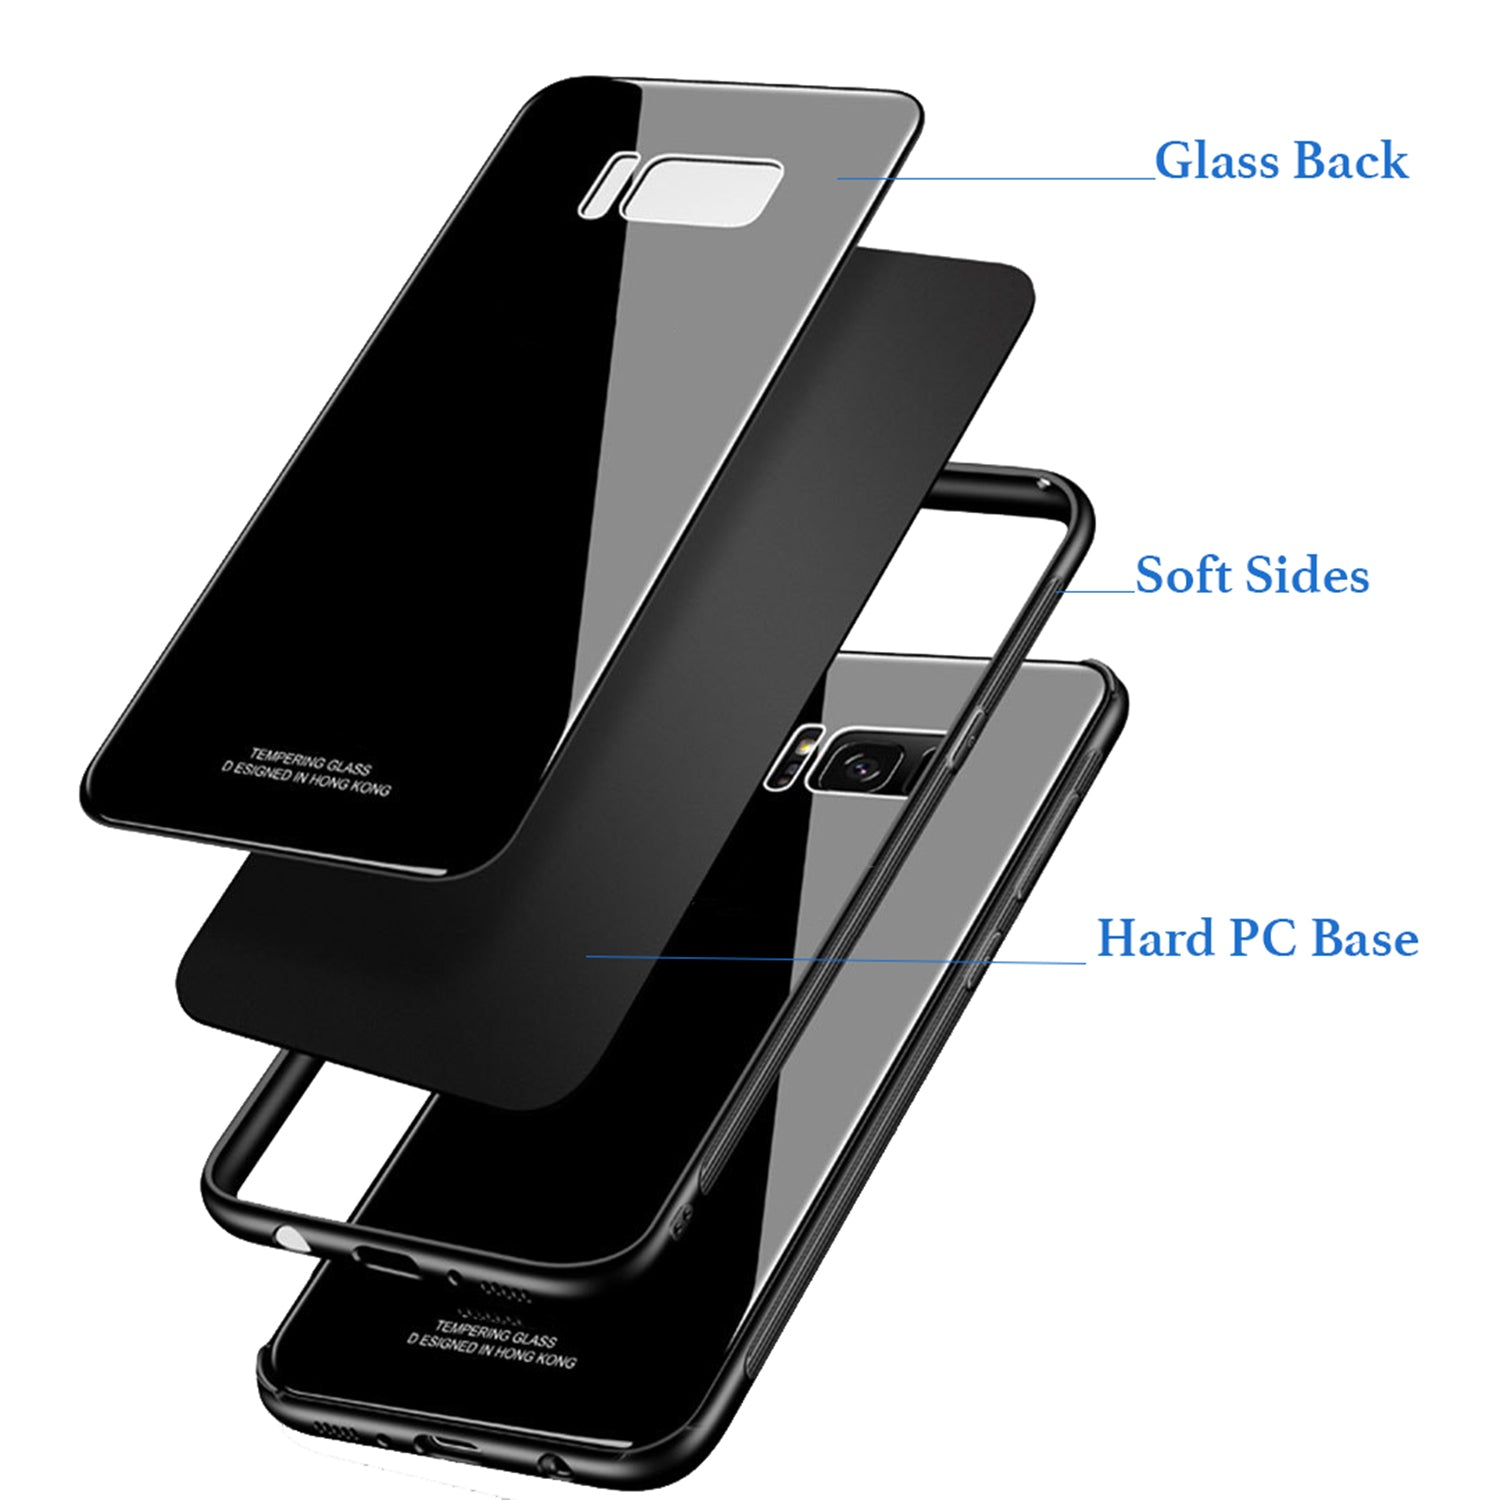 Toughened Glass Back Shock Proof Slim Case Cover for Samsung Galaxy S8 - Black - Mobizang